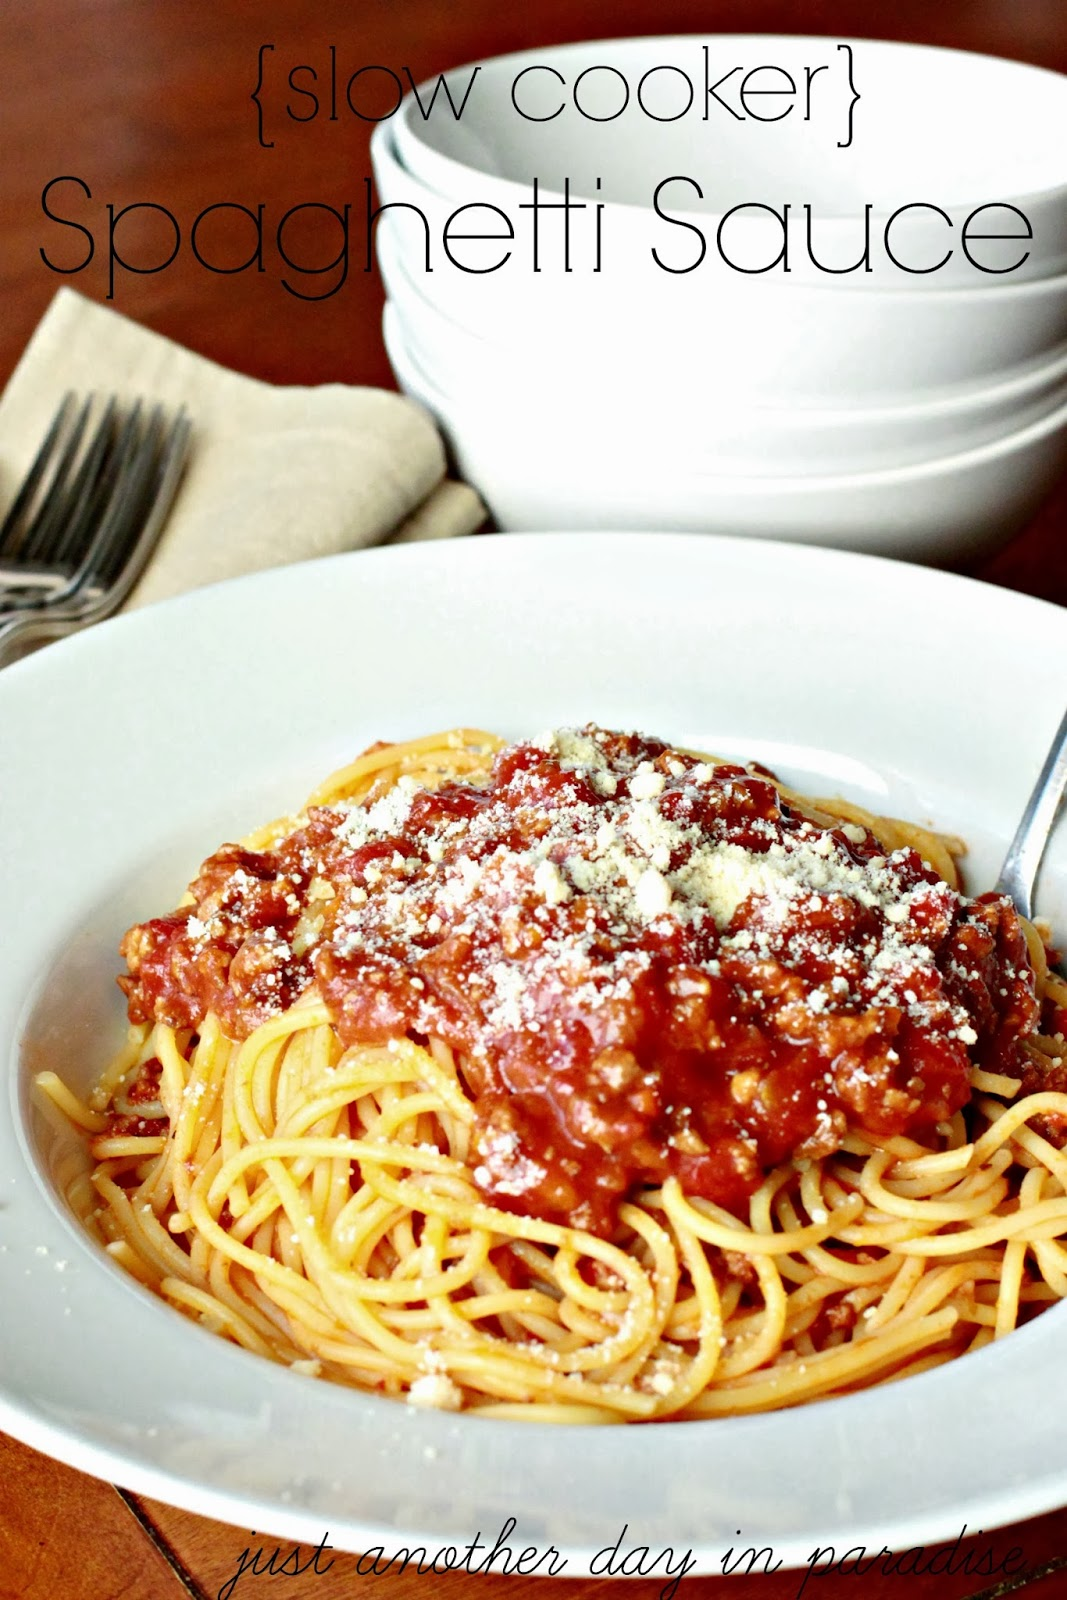 Just Another Day in Paradise: Spaghetti Sauce {Slow Cooker Saturday}